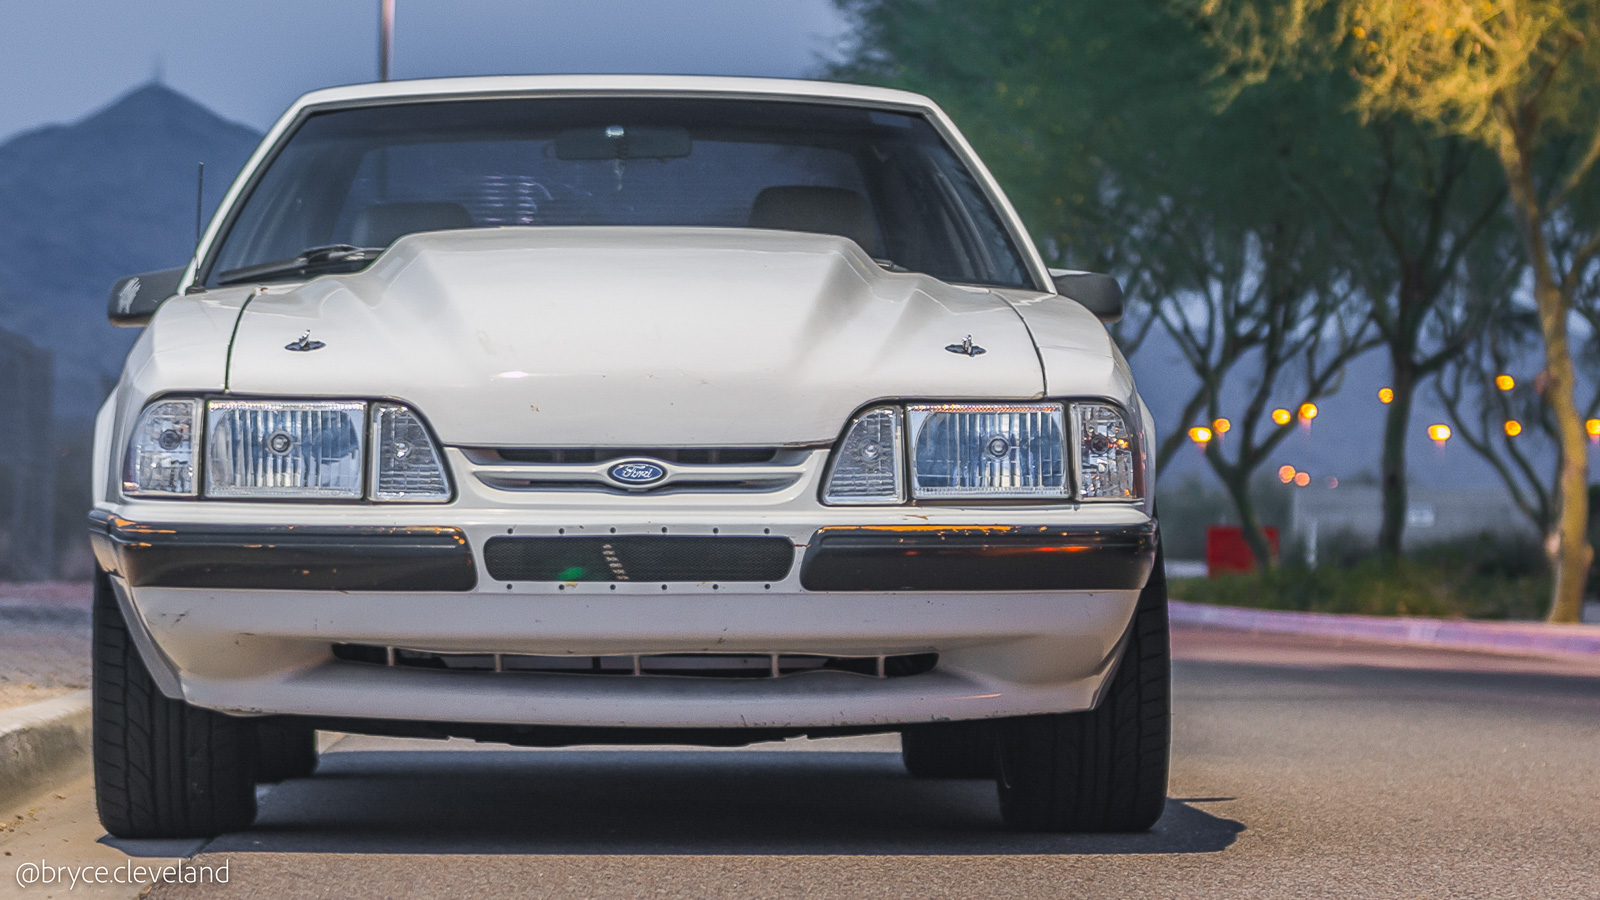 8 Reasons Why The Fox Body Mustang is The Best Muscle Car Ever